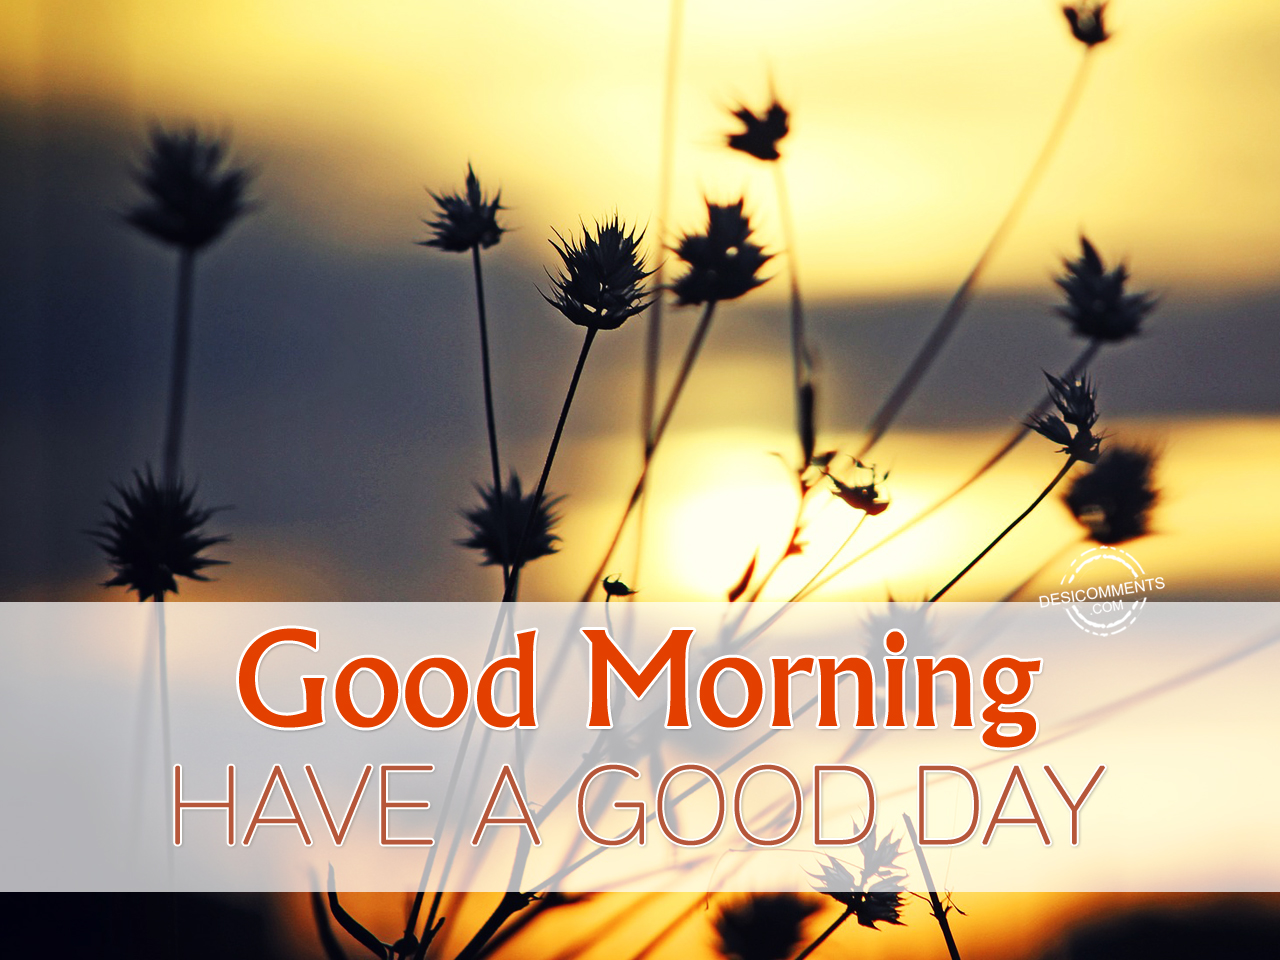 Good Morning Have A Great Day : Good morning have a day desicomments